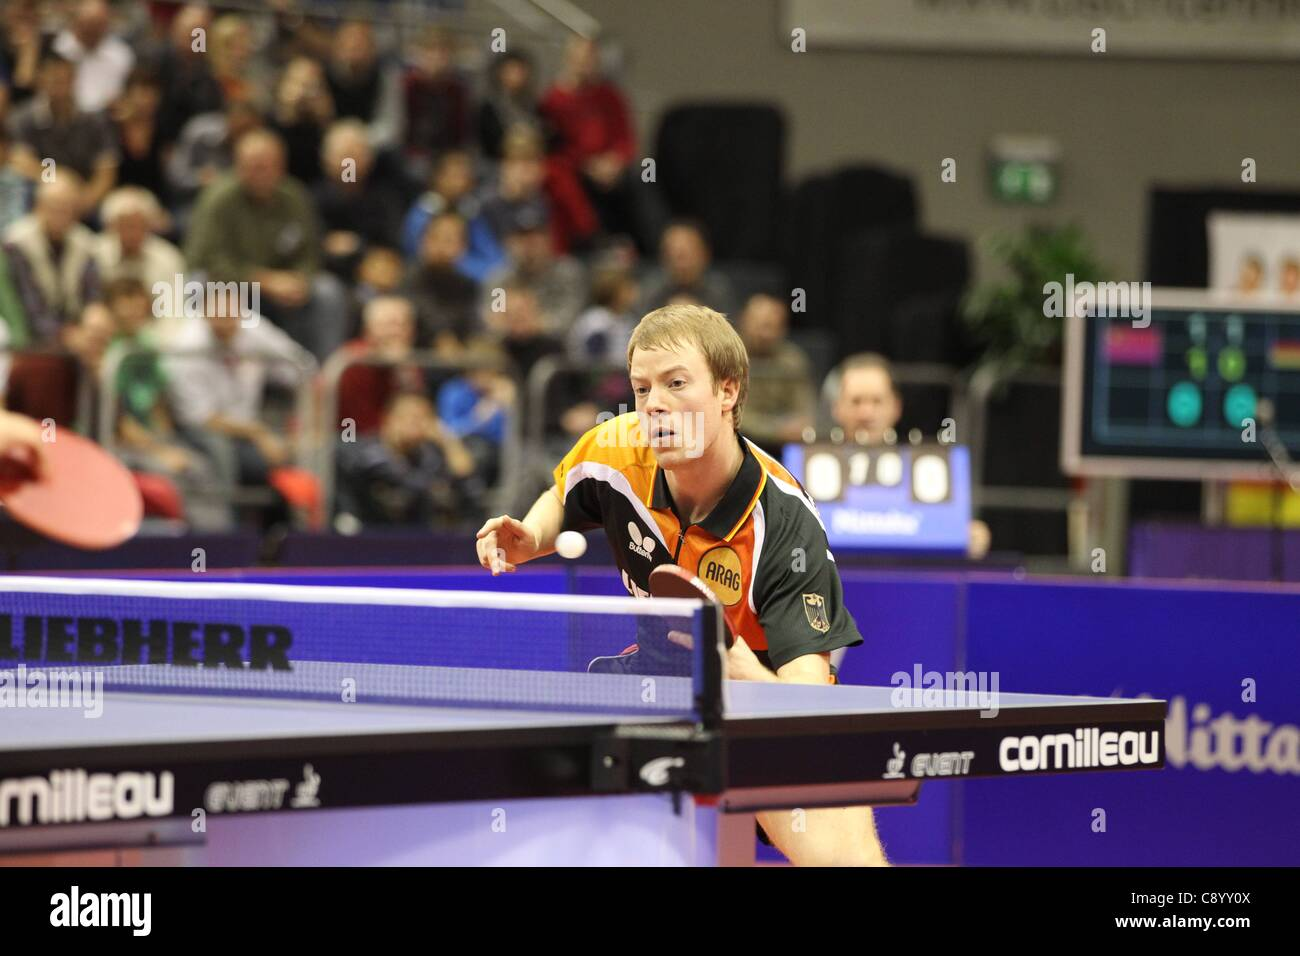 05 11 2011 Magdeburg, Germany.  Patrick Tree Germany. Germany vs China Table Tennis   World team Cup 2011 in the - Stock Image